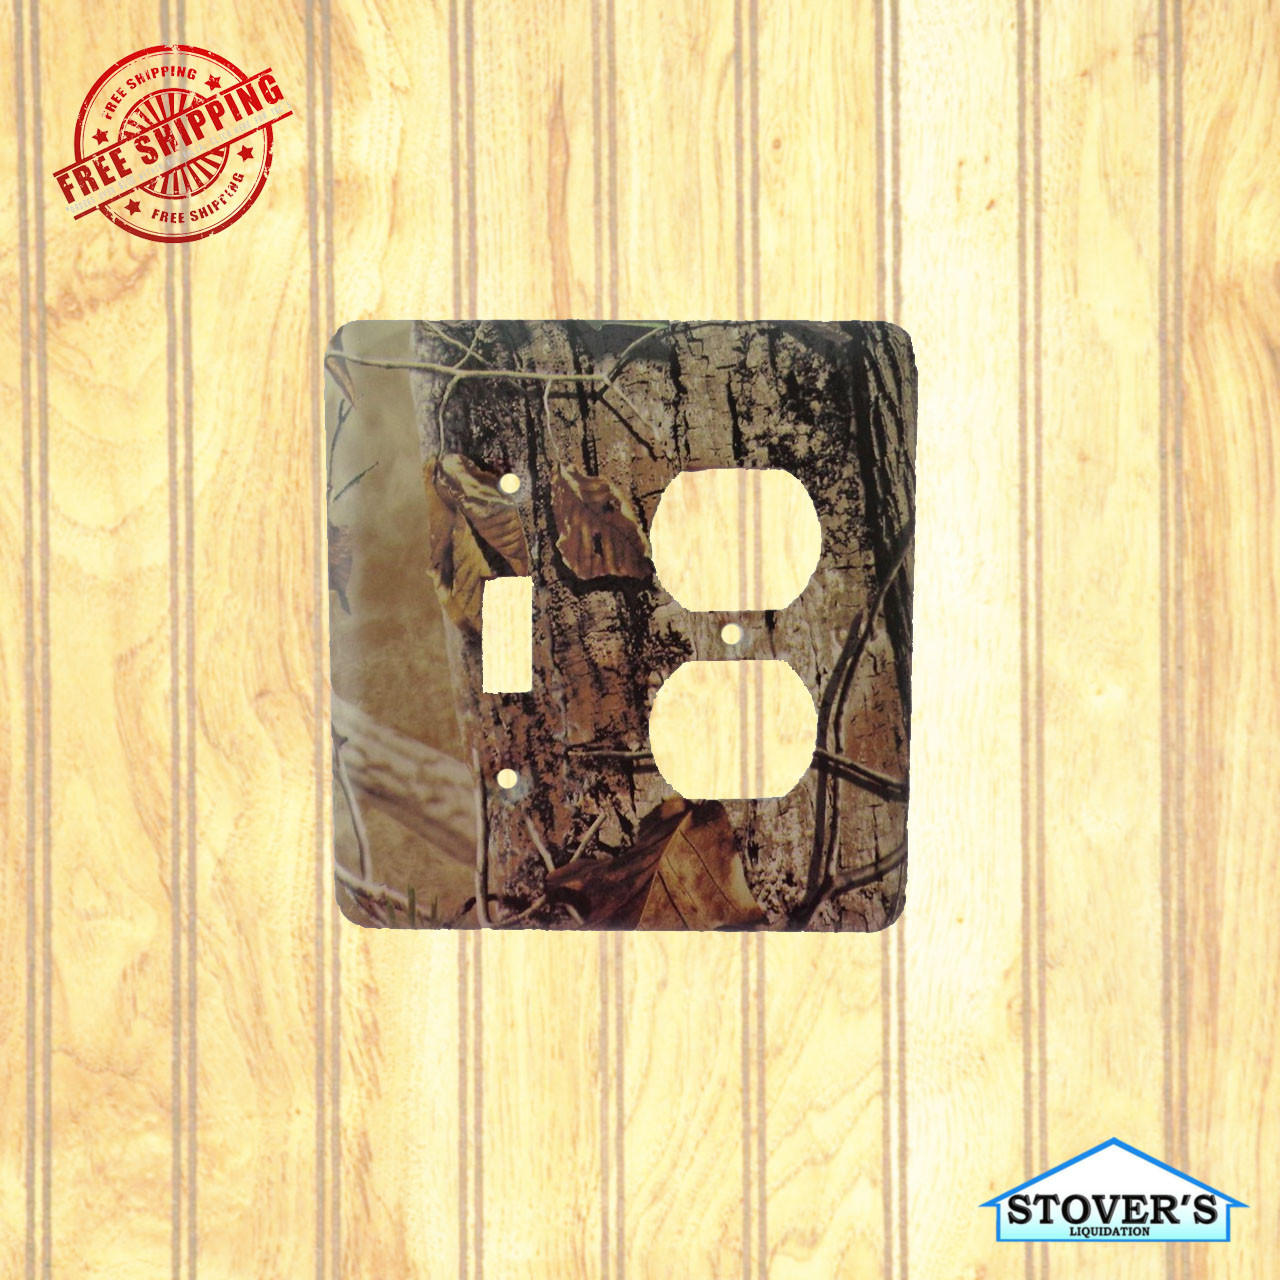 Light & Socket Plate   Realtree APG HD   Outdoors-Themed   NEW